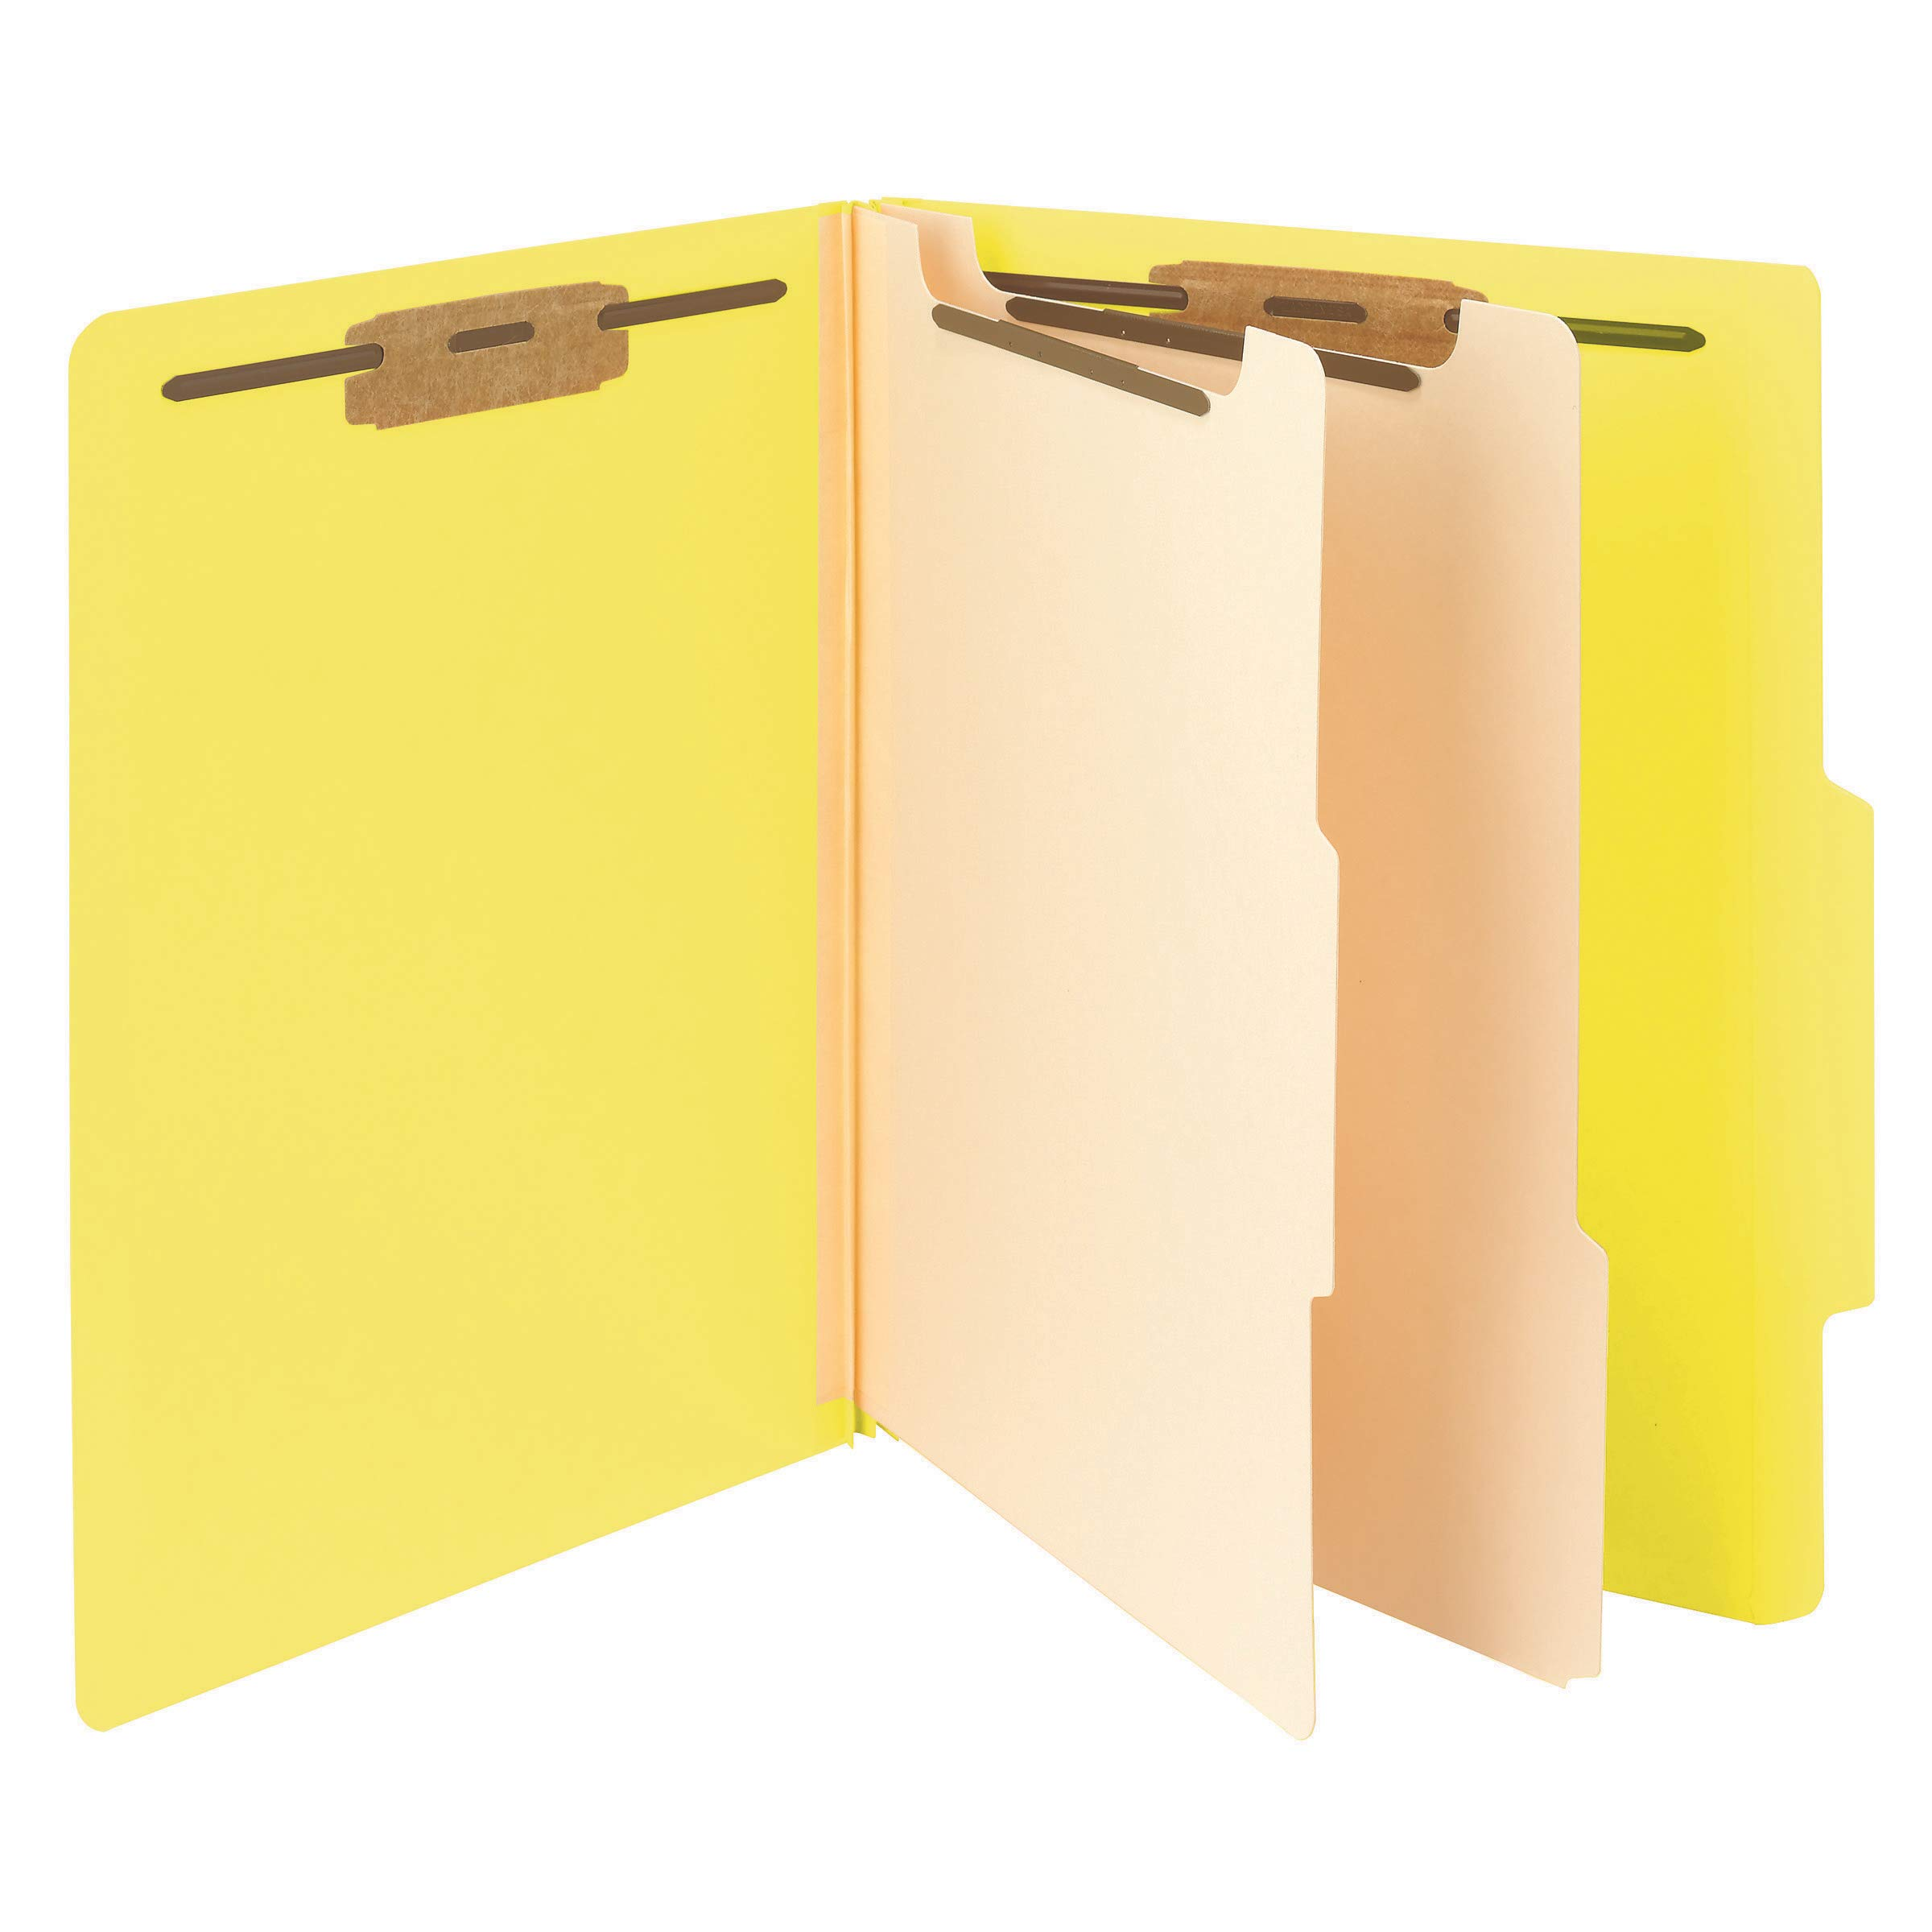 Smead Classification File Folder, 2 Dividers, 2'' Expansion, 2/5-Cut Tab, Letter Size, Yellow, 10 per Box (14004)